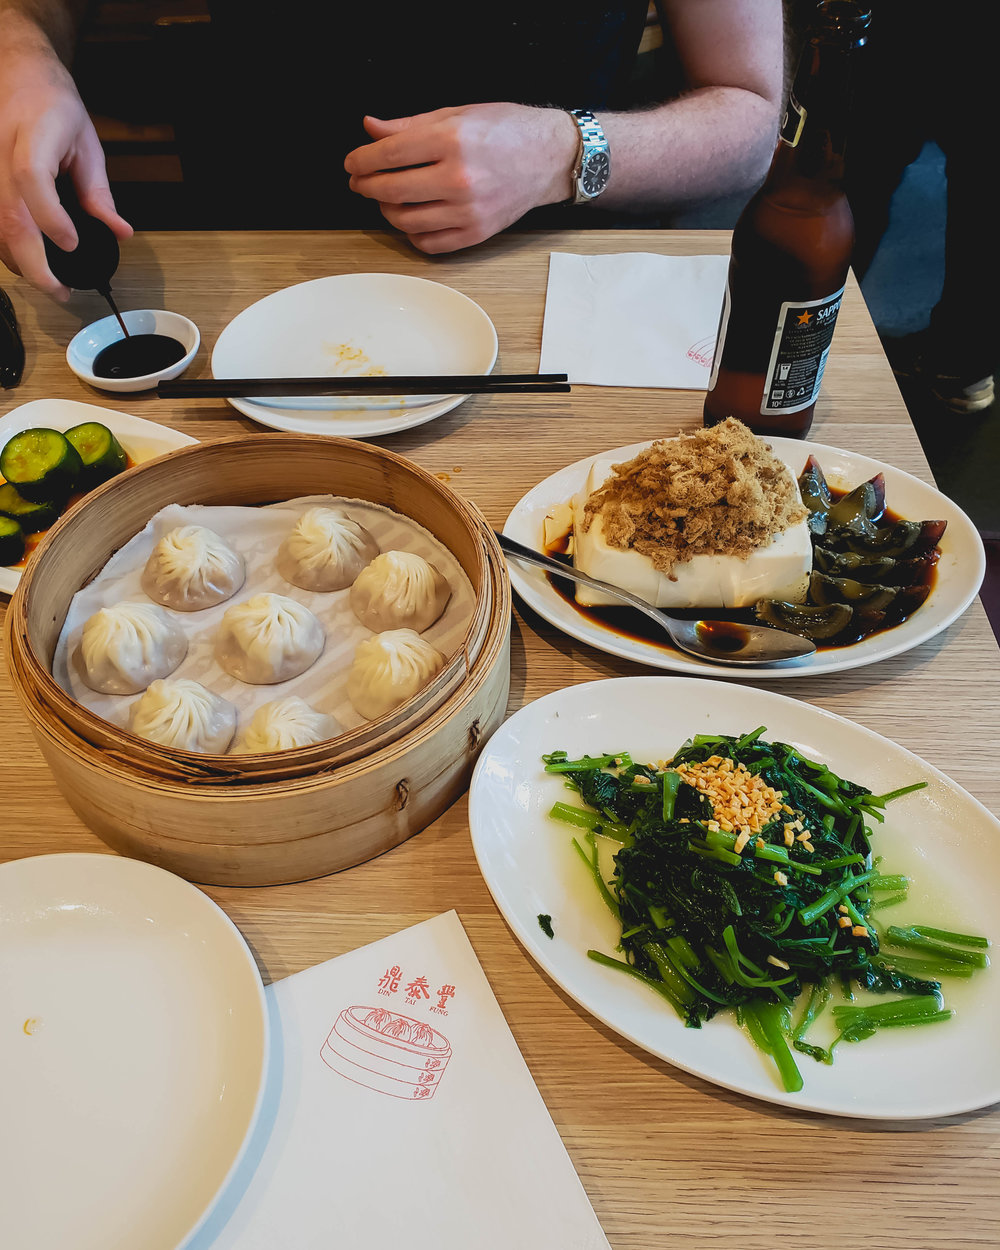 cucumbers; xiao long bao; silken tofu with pork floss and century egg, water spinach .